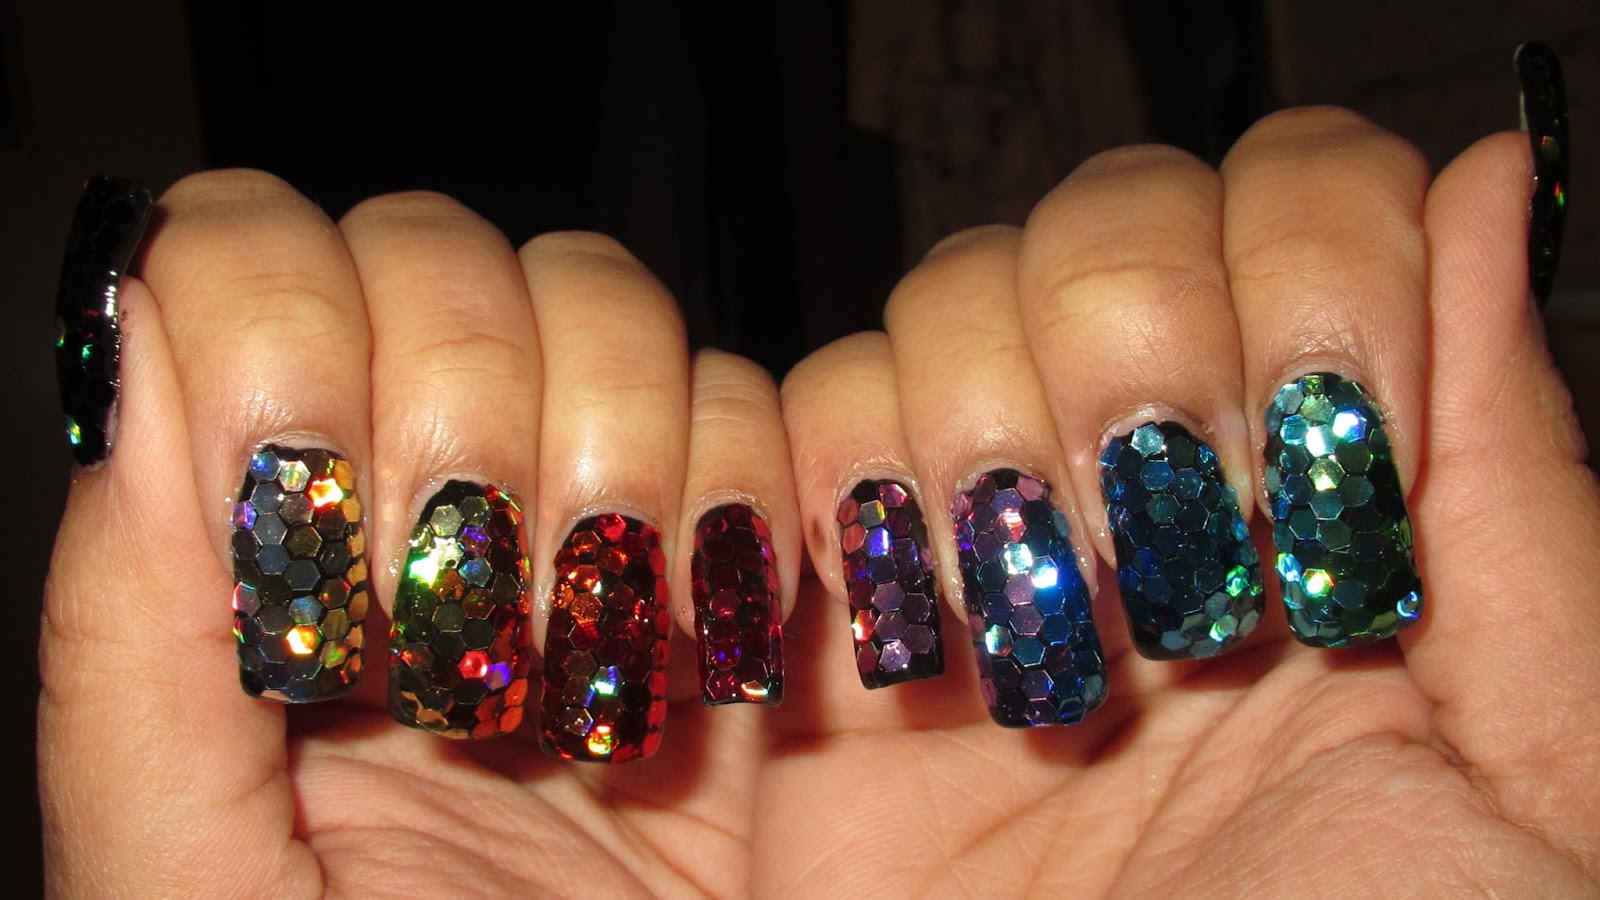 My Simple Little Pleasures: NOTD: New Year's Super Blingy Ombre